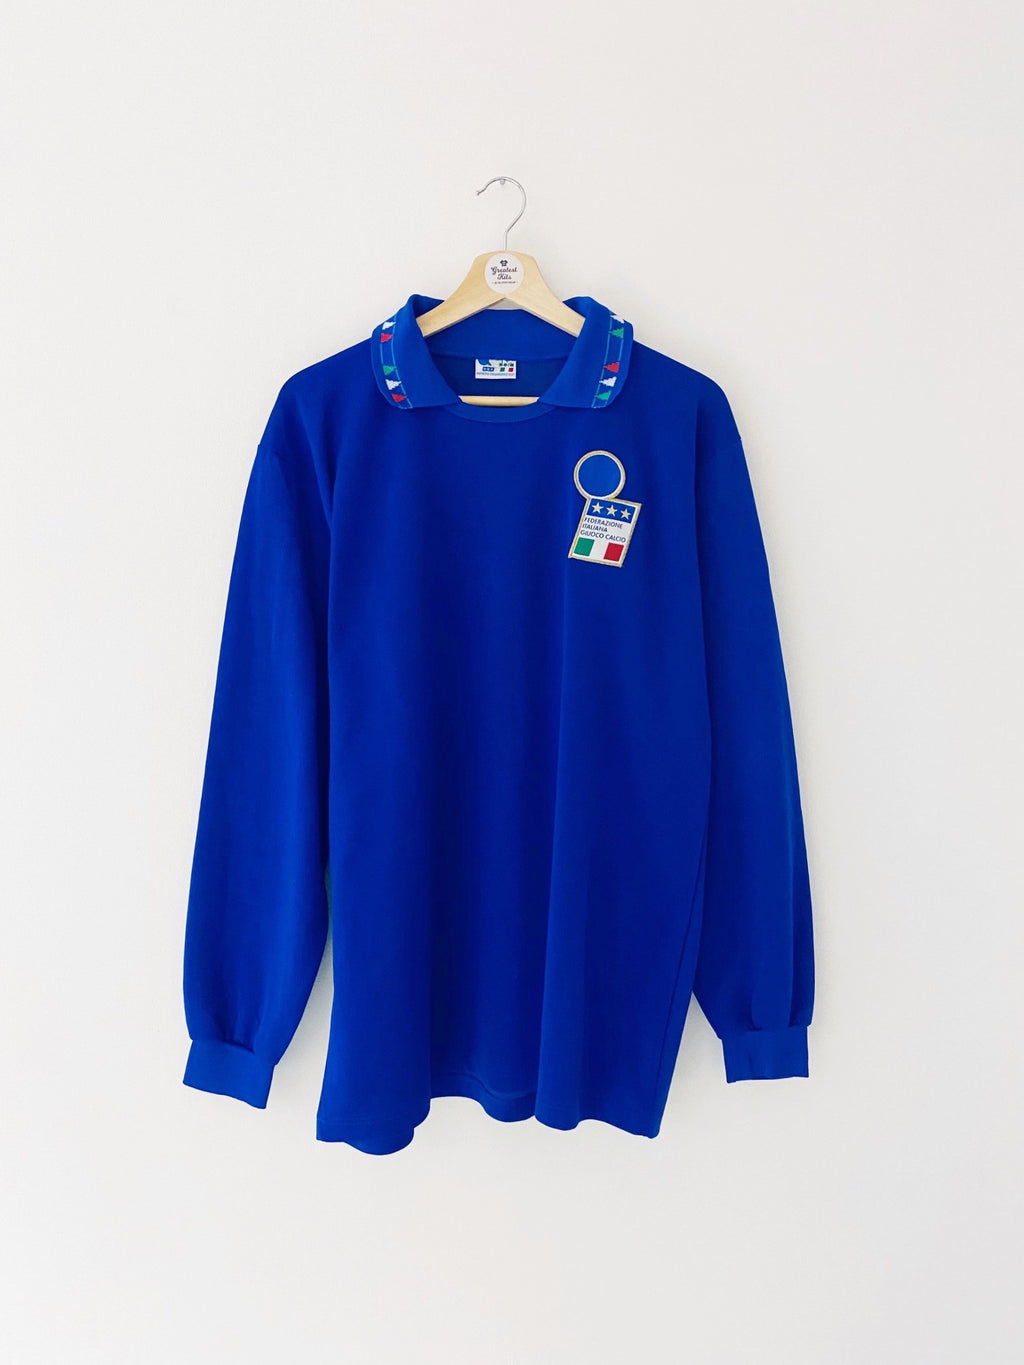 1992/93 Italy *Player Issue* Home L/S Shirt (L) 8.5/10